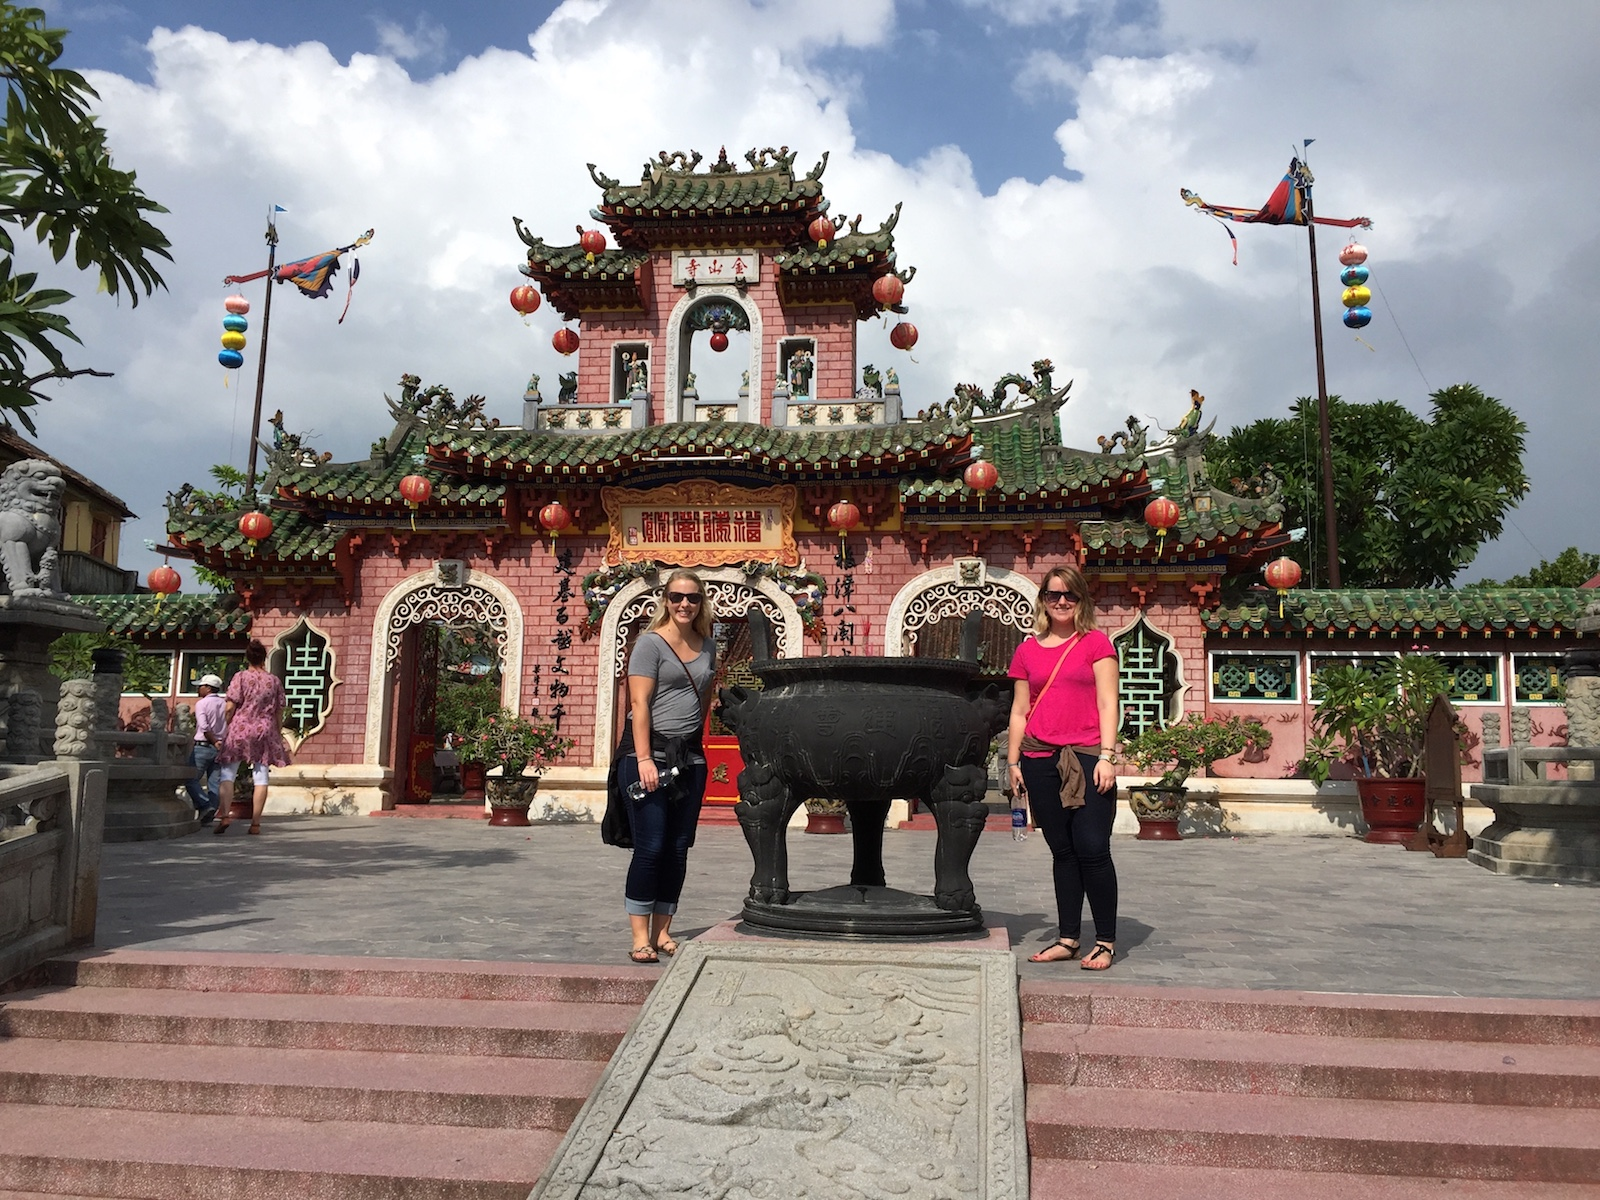 Katie and Kayla's Week in Vietnam - Travel Beyond